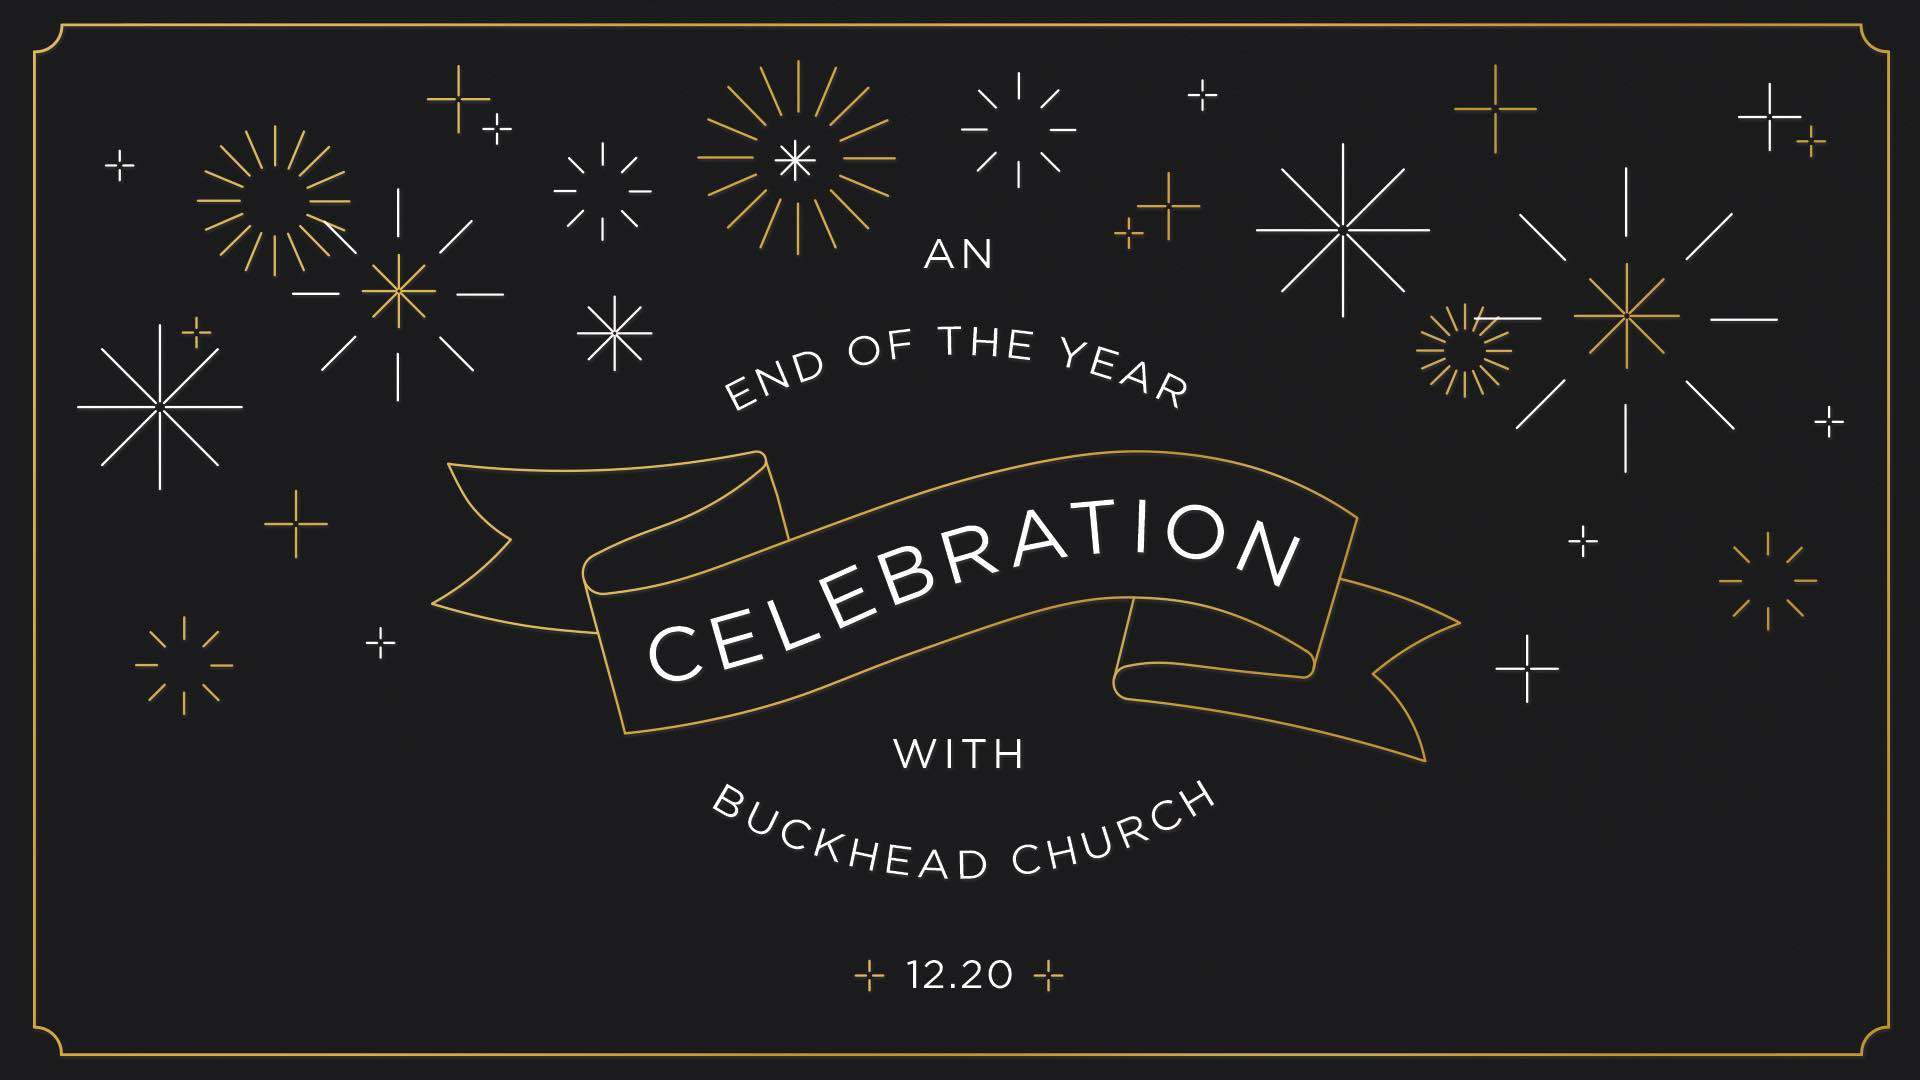 An End of the Year Celebration with Buckhead Church